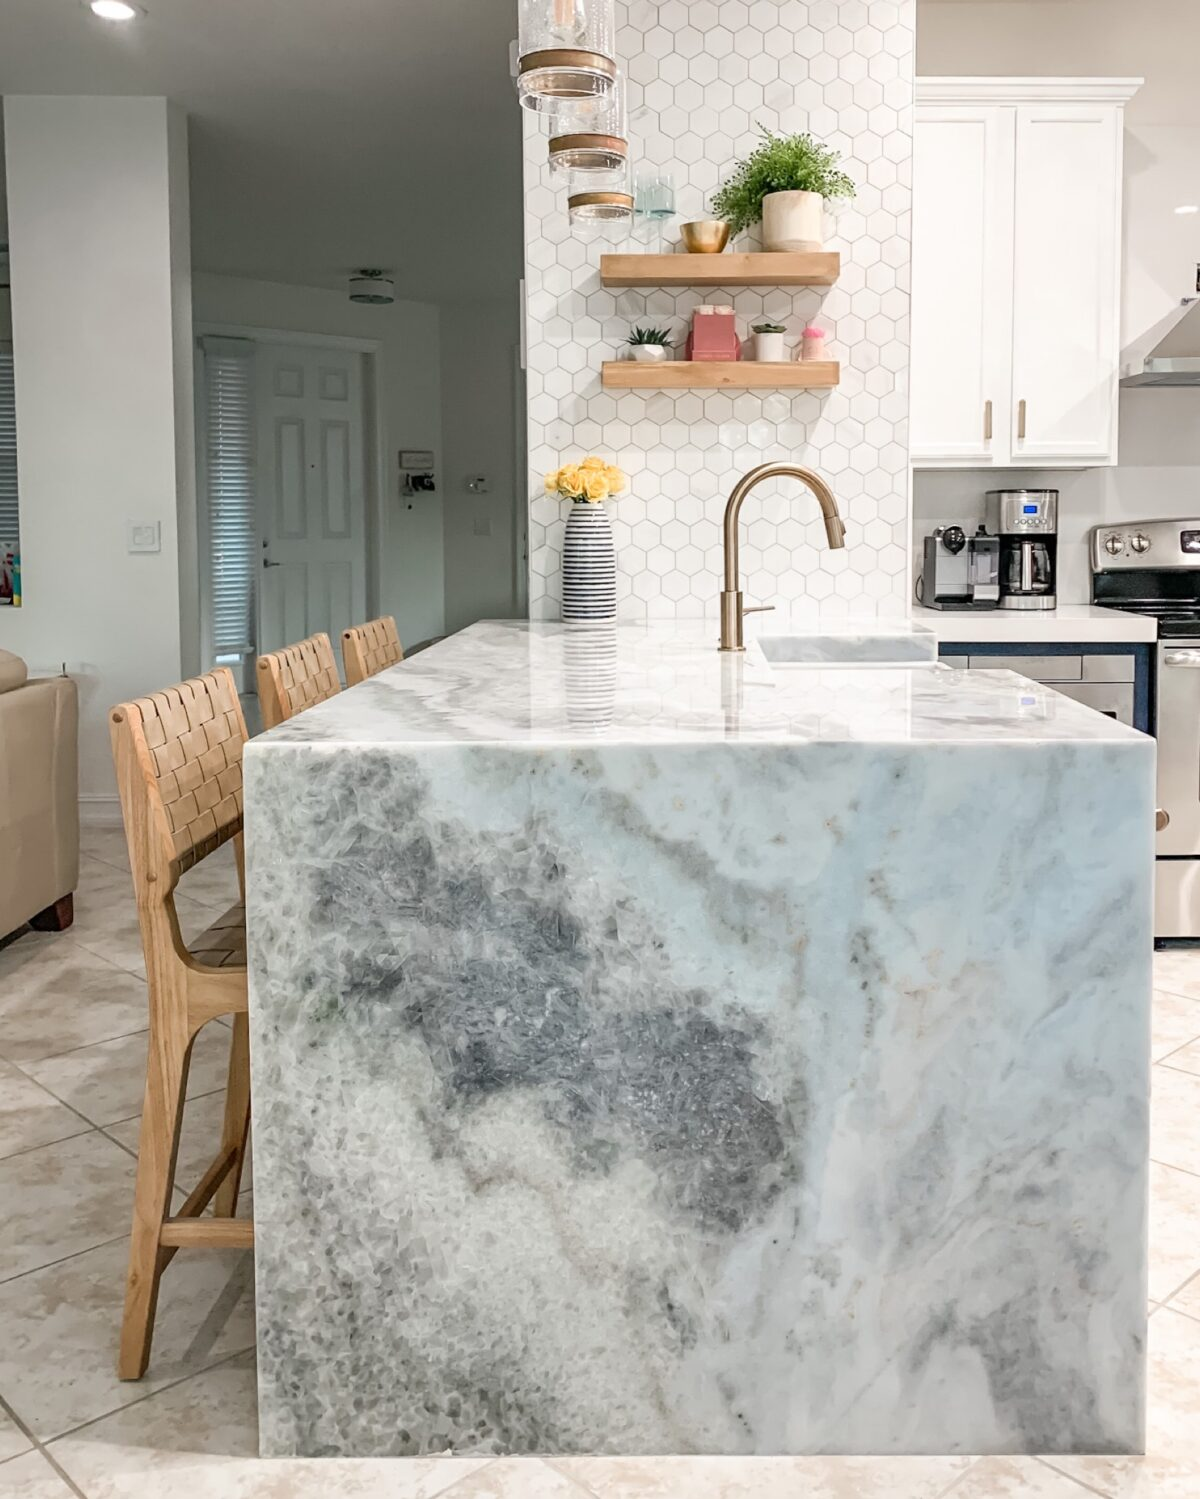 Primestones blue marble waterfall kitchen island, marble West Palm Beach, marble Miami